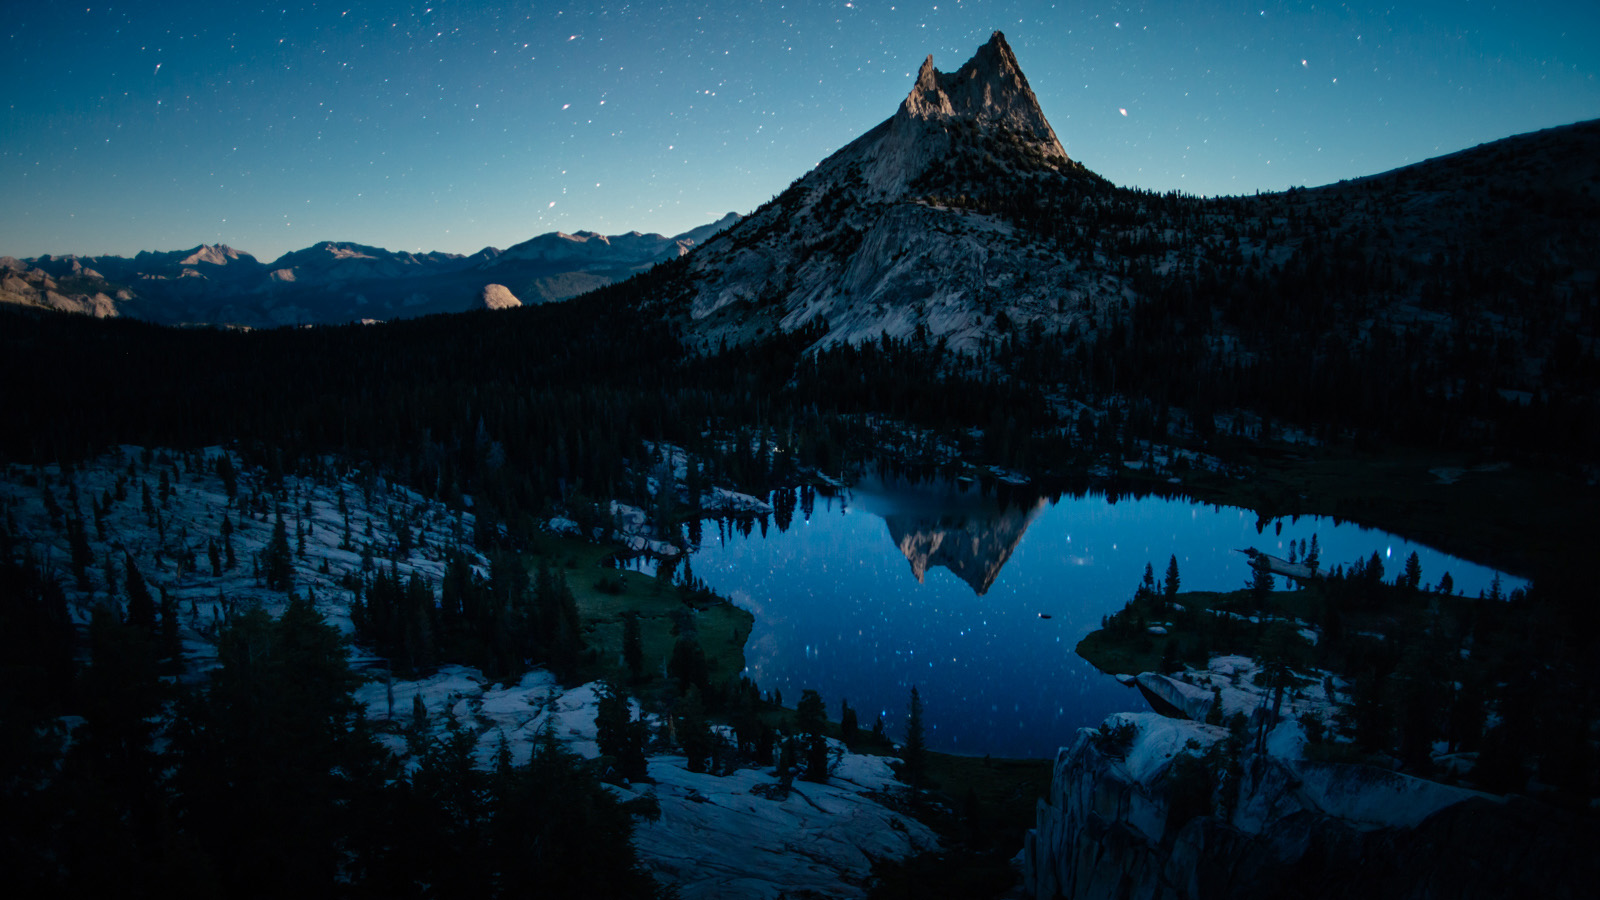 """If our entire time in the Range of Light served as the matinee, then this is certainly the feature. Raked with moonlight, Cathedral sits monumentally above Upper Cathedral Lake and the rest of Tuolumne on this clear summer evening.    John Muir wrote, """"Yonder, to the eastward of our camp grove, stands one of Nature's cathedrals, hewn from the living rock, almost conventional in form, about two thousand feet high, nobly adorned with spires and pinnacles, thrilling under floods of sunshine as if alive like a grovetemple, and well named """"Cathedral Peak."""""""